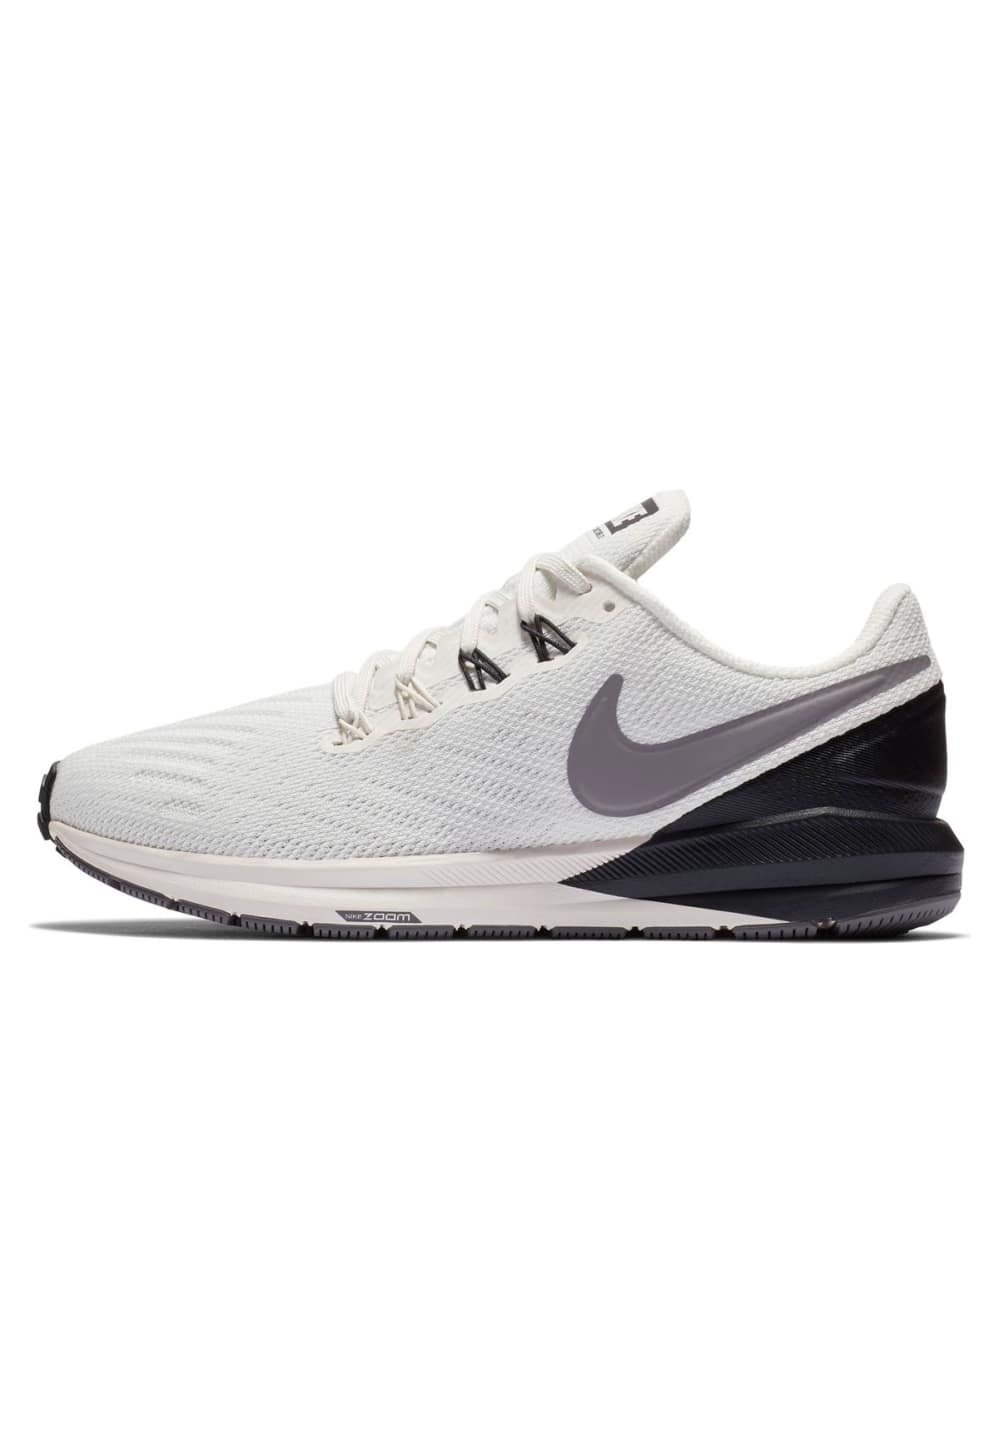 sports shoes c63ab 7cb35 Nike Air Zoom Structure 22 - Running shoes for Women - White